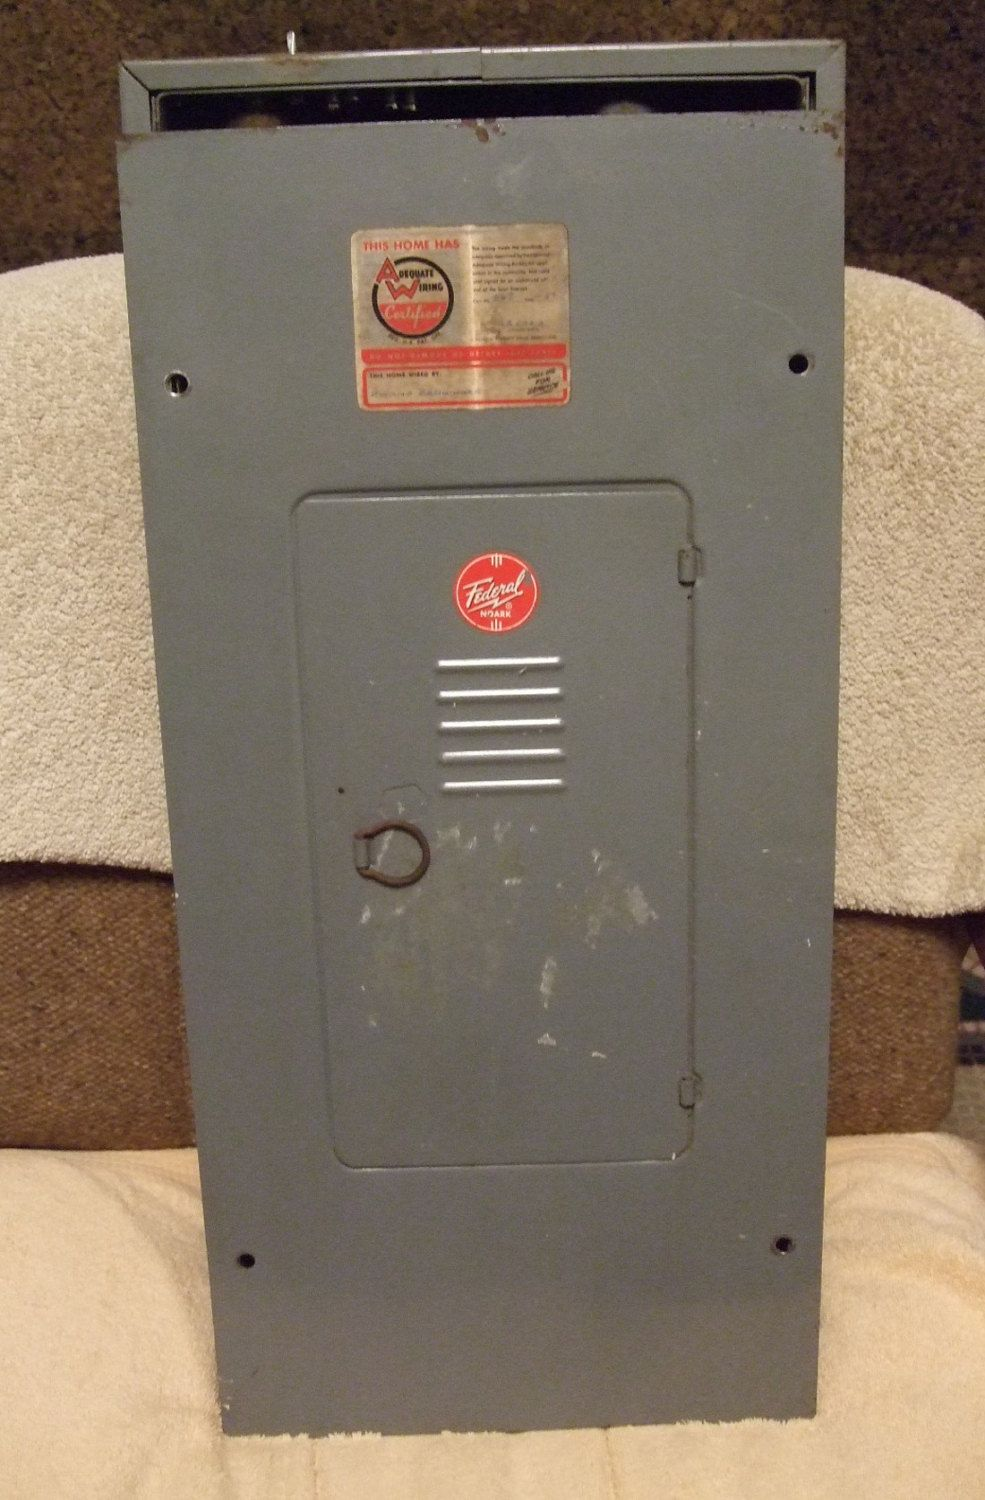 small resolution of federal noark 200 amp electrical breaker box panel 1957 residential wiring 40 spaces for stab lok breakers restoration replacemnt vintage by